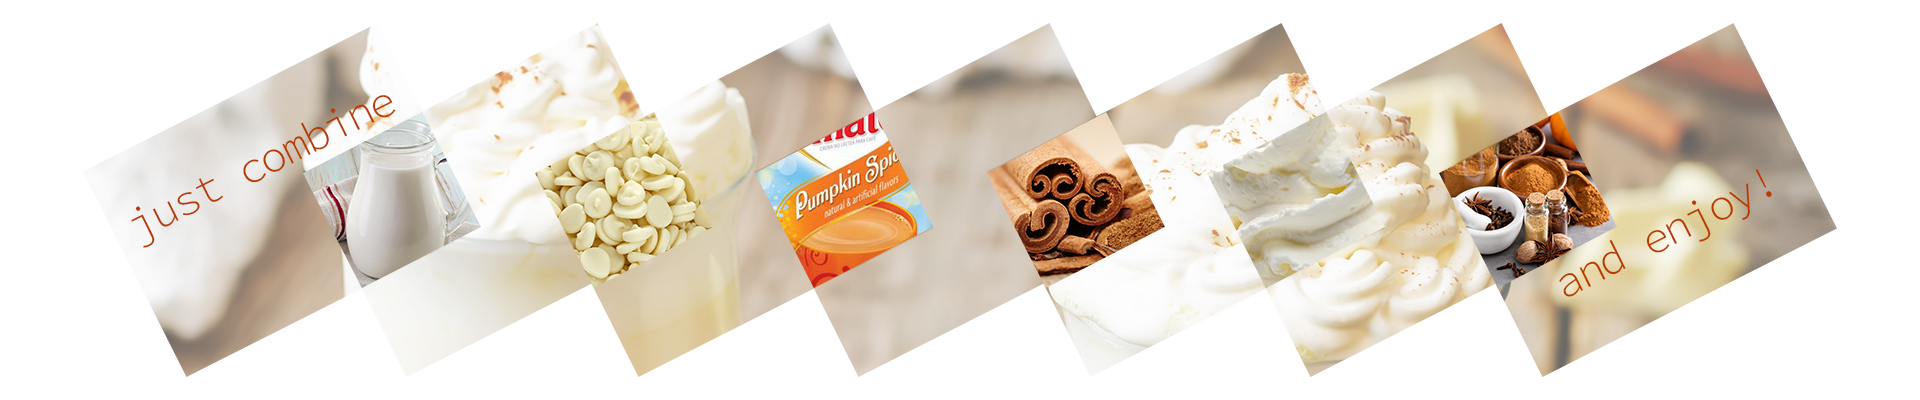 Just combine and enjoy! White Chocolate Pumpkin Spice Ingredients